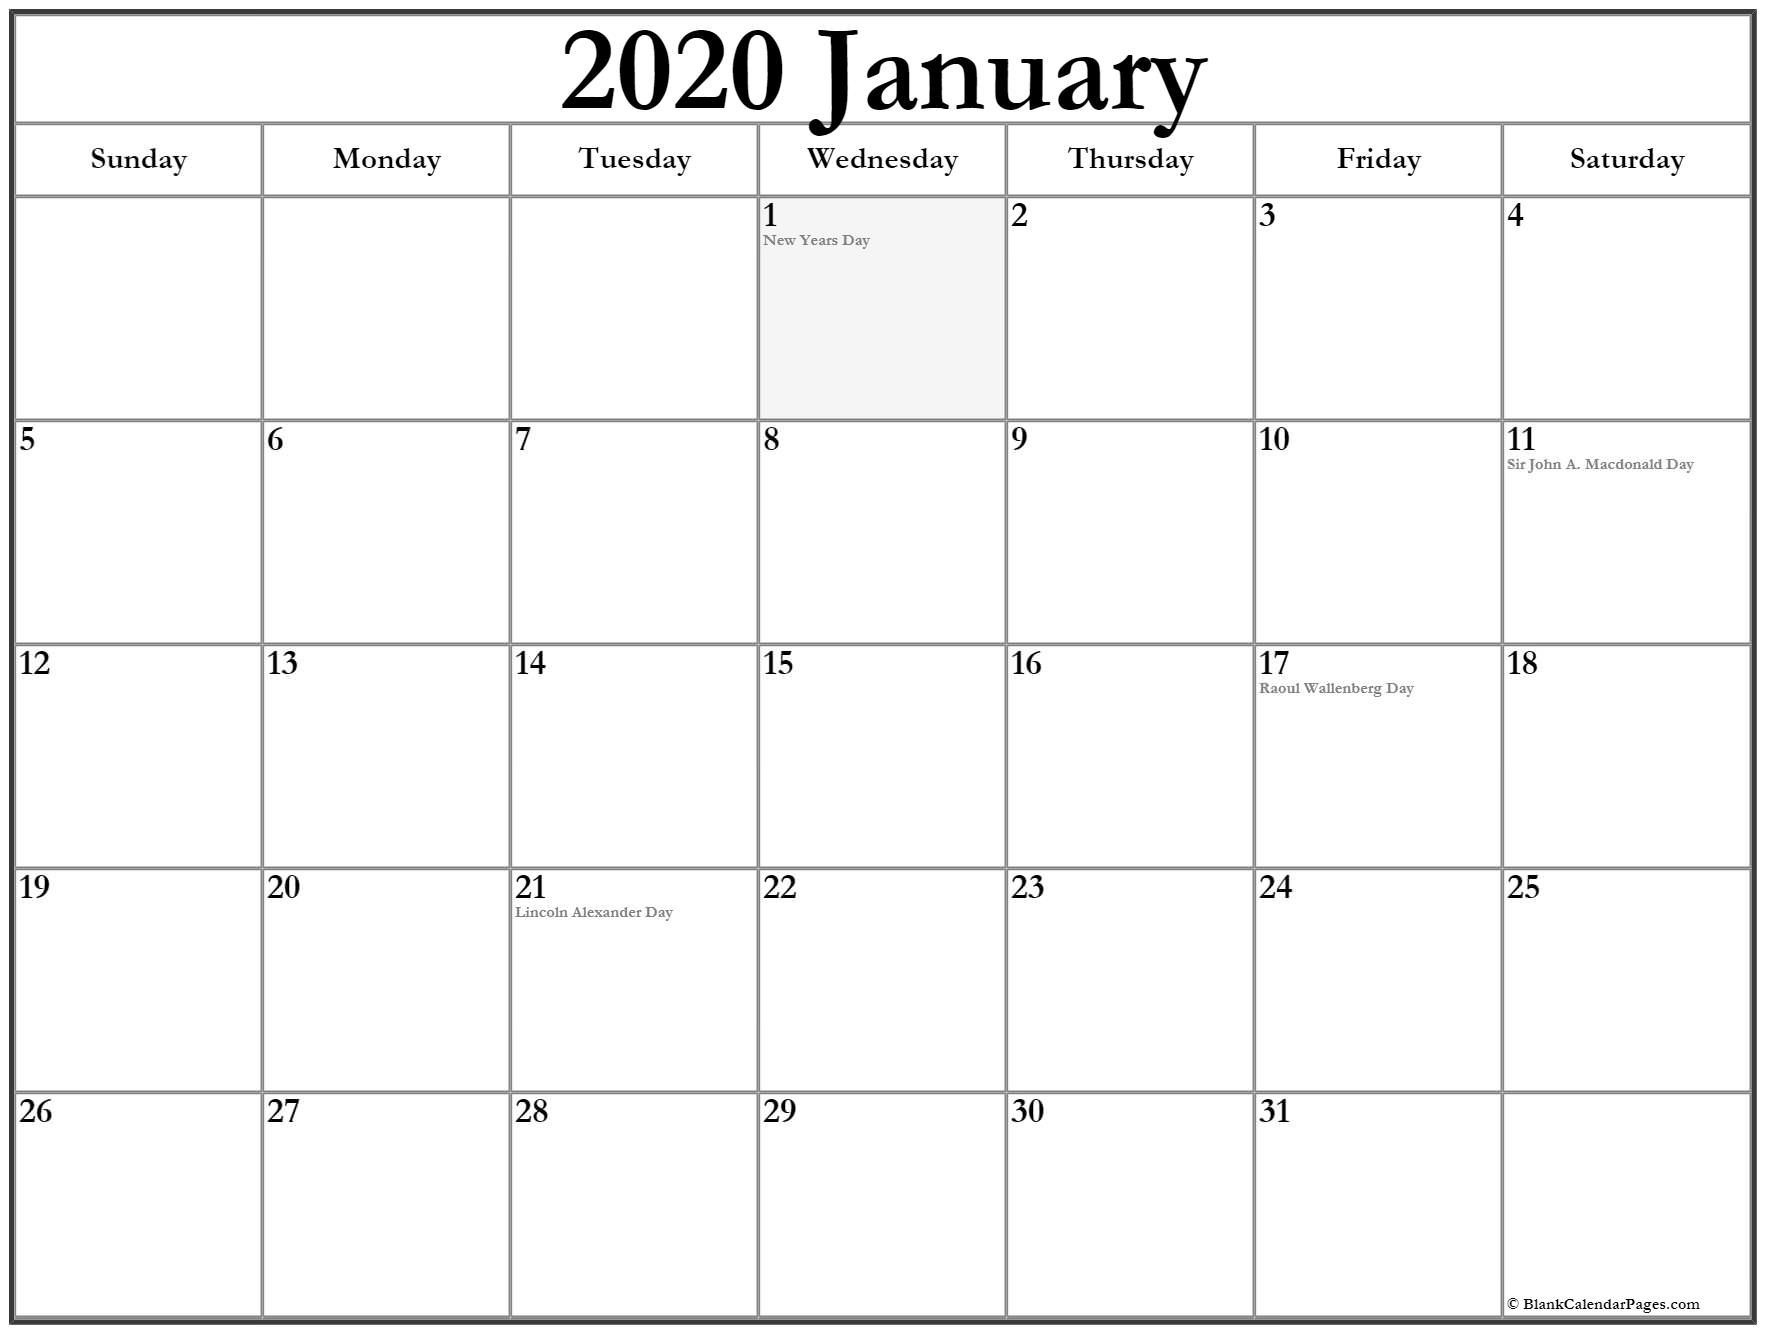 January 2020 Calendar With Holidays | Canadian Calendar Extraordinary January 2020 Printable Calendar Canada